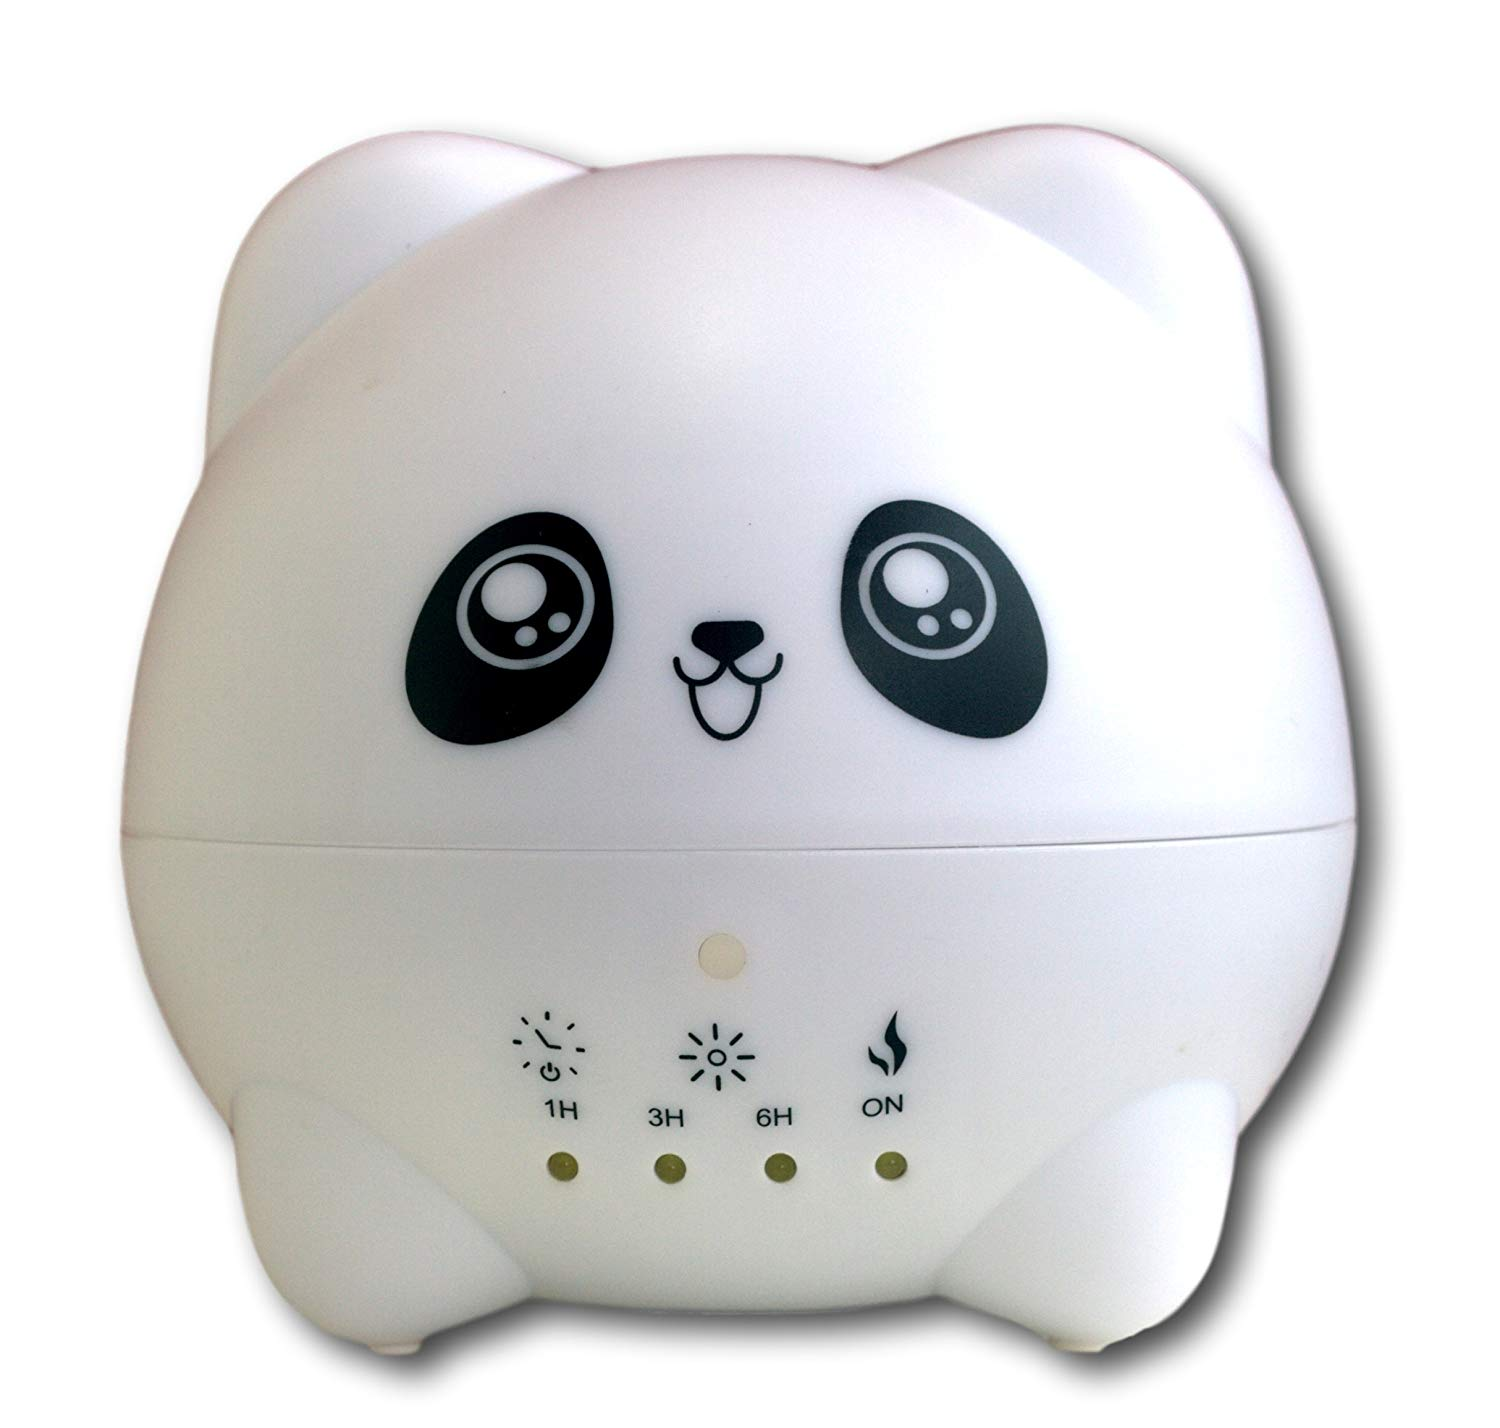 Cute Animals Aromatherapy Ultrasonic Diffuser for Kids-Portable Essential Oil Diffuser with 7 Color LED Lights-Waterless Auto-shut Function for Home & Office-Bedroom-300mL (Panda)- BPA Free